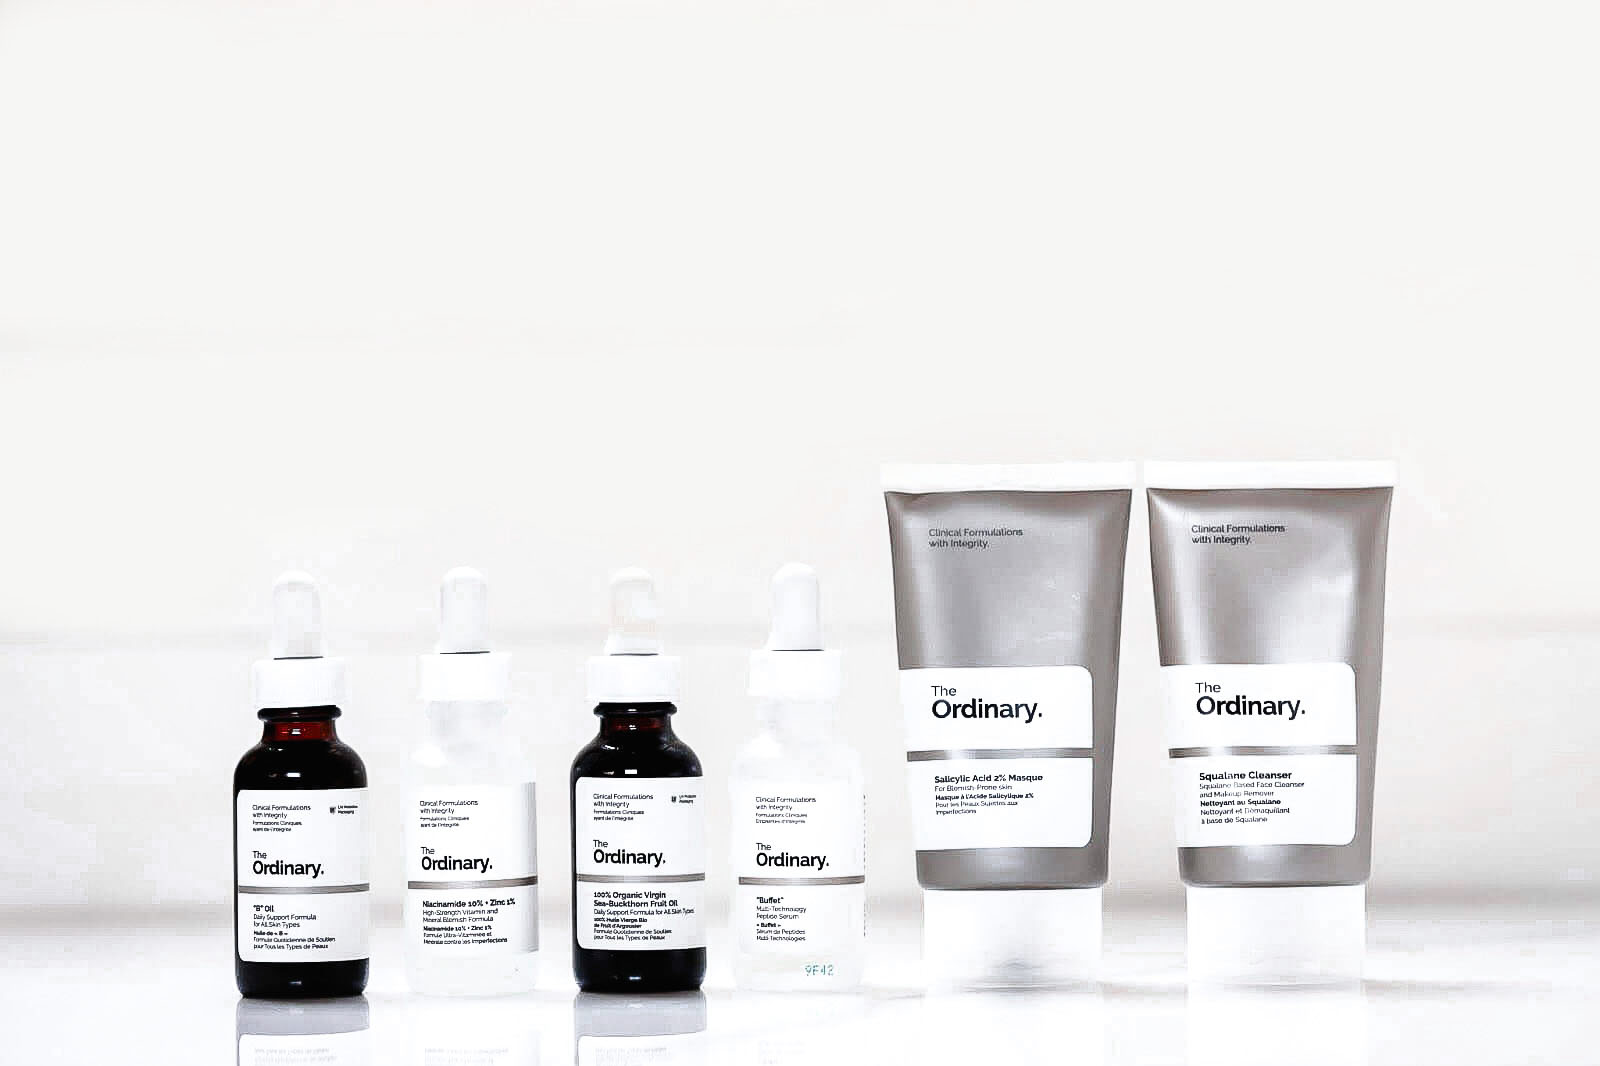 The Ordinary Soins Visage revue